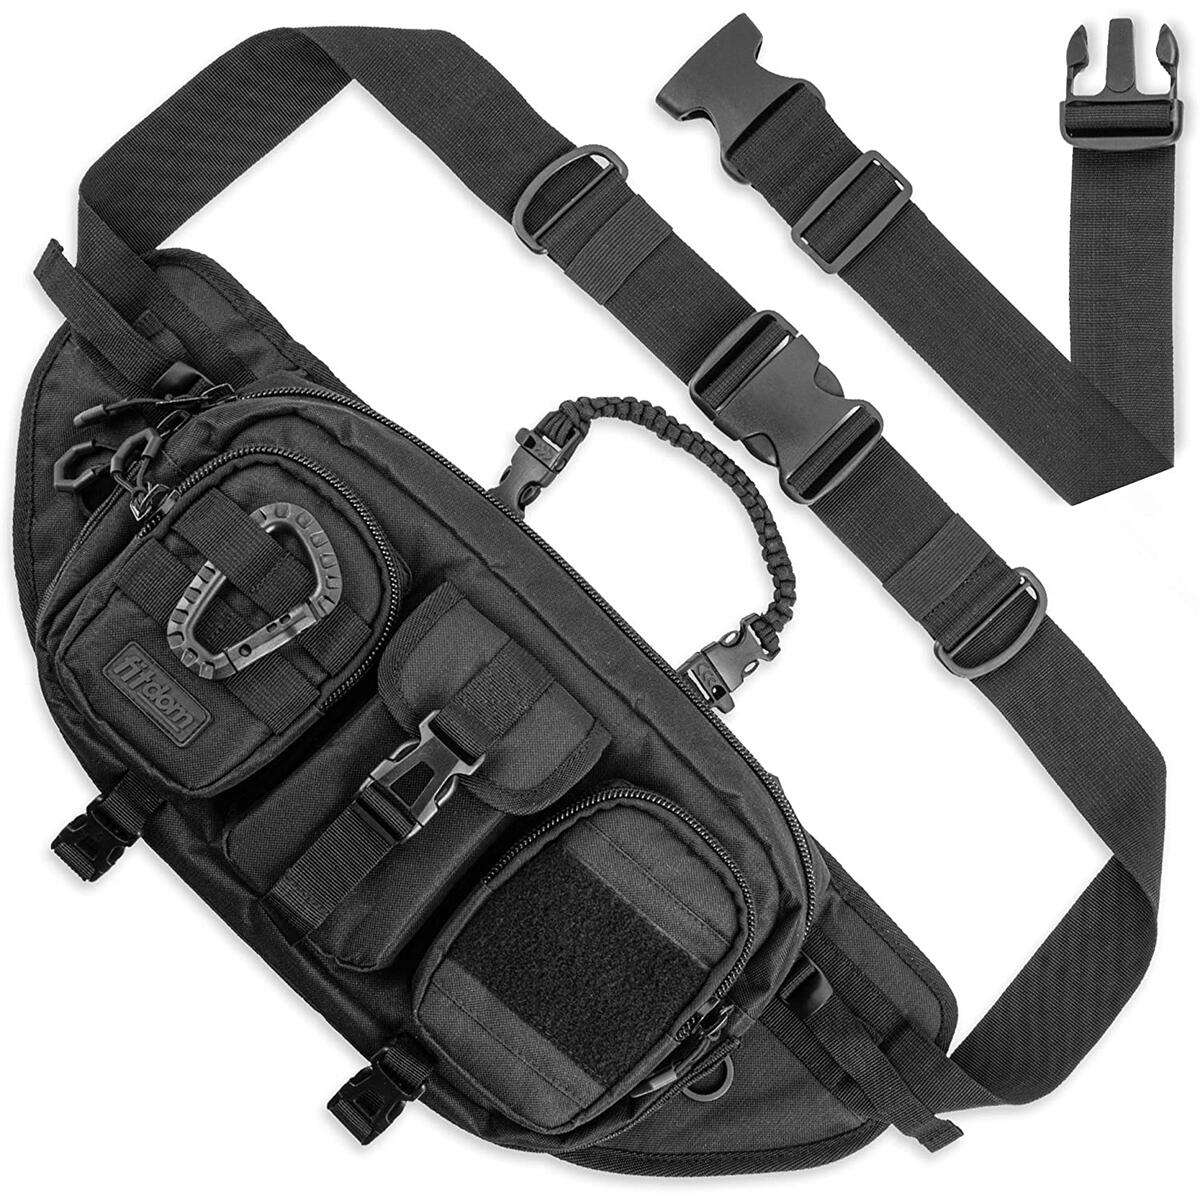 Fitdom Large Tactical Sling Bag for Men. Made from Heavy Duty Techwear Fabric & Built Tough for Outdoor. Also Use As EDC Backpack, Fanny Waist Pack, Crossbody, Shoulder or Chest Bag for Travel Cycling